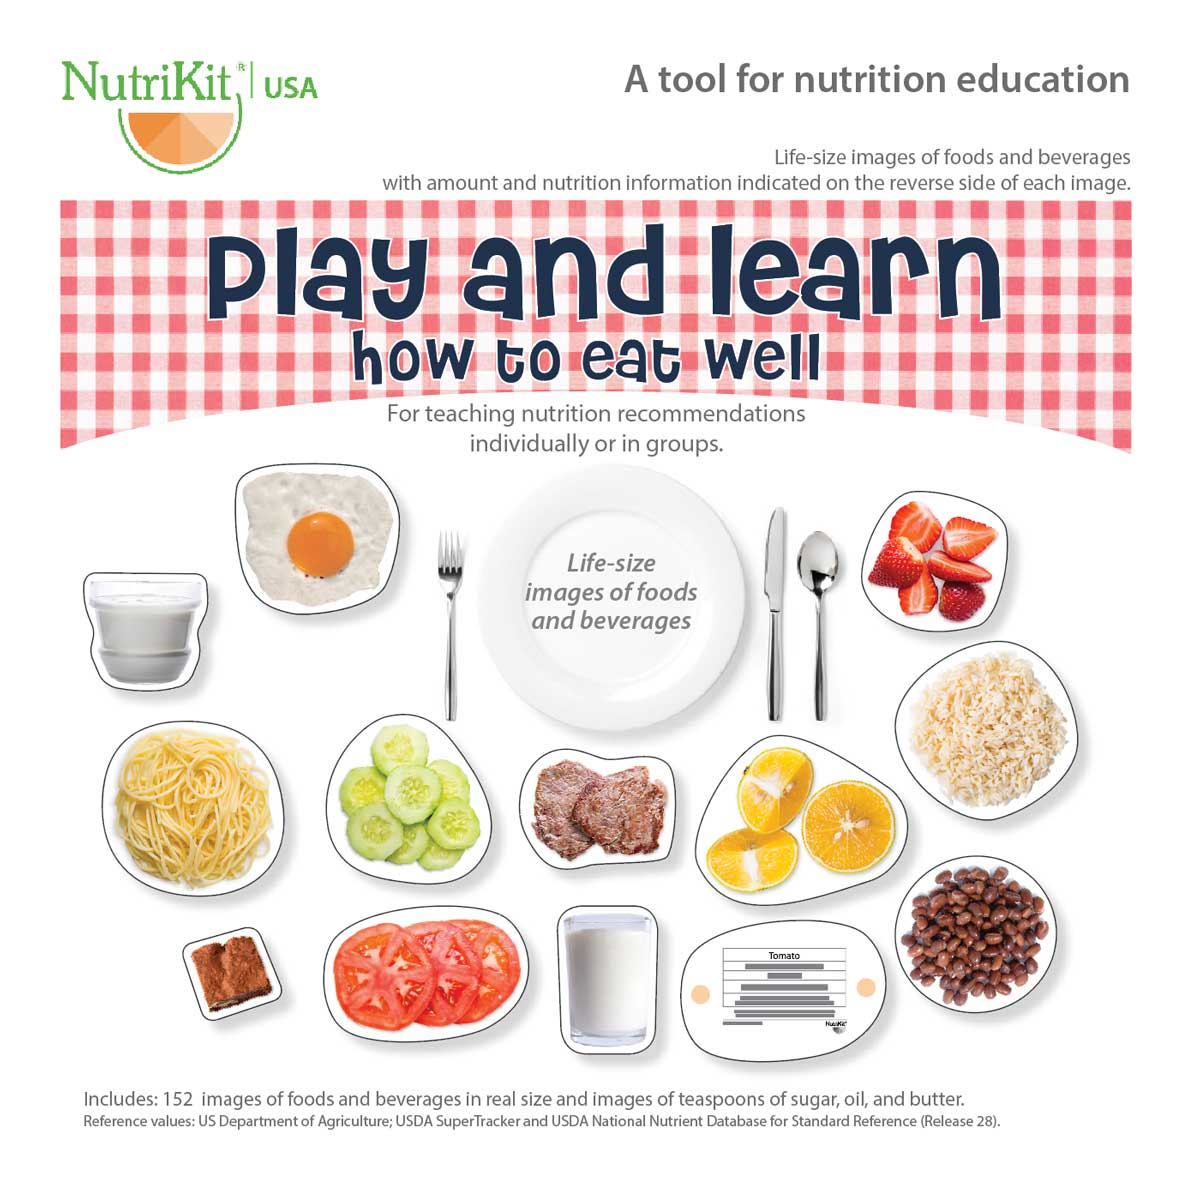 NutriKit Play and learn how to eat well